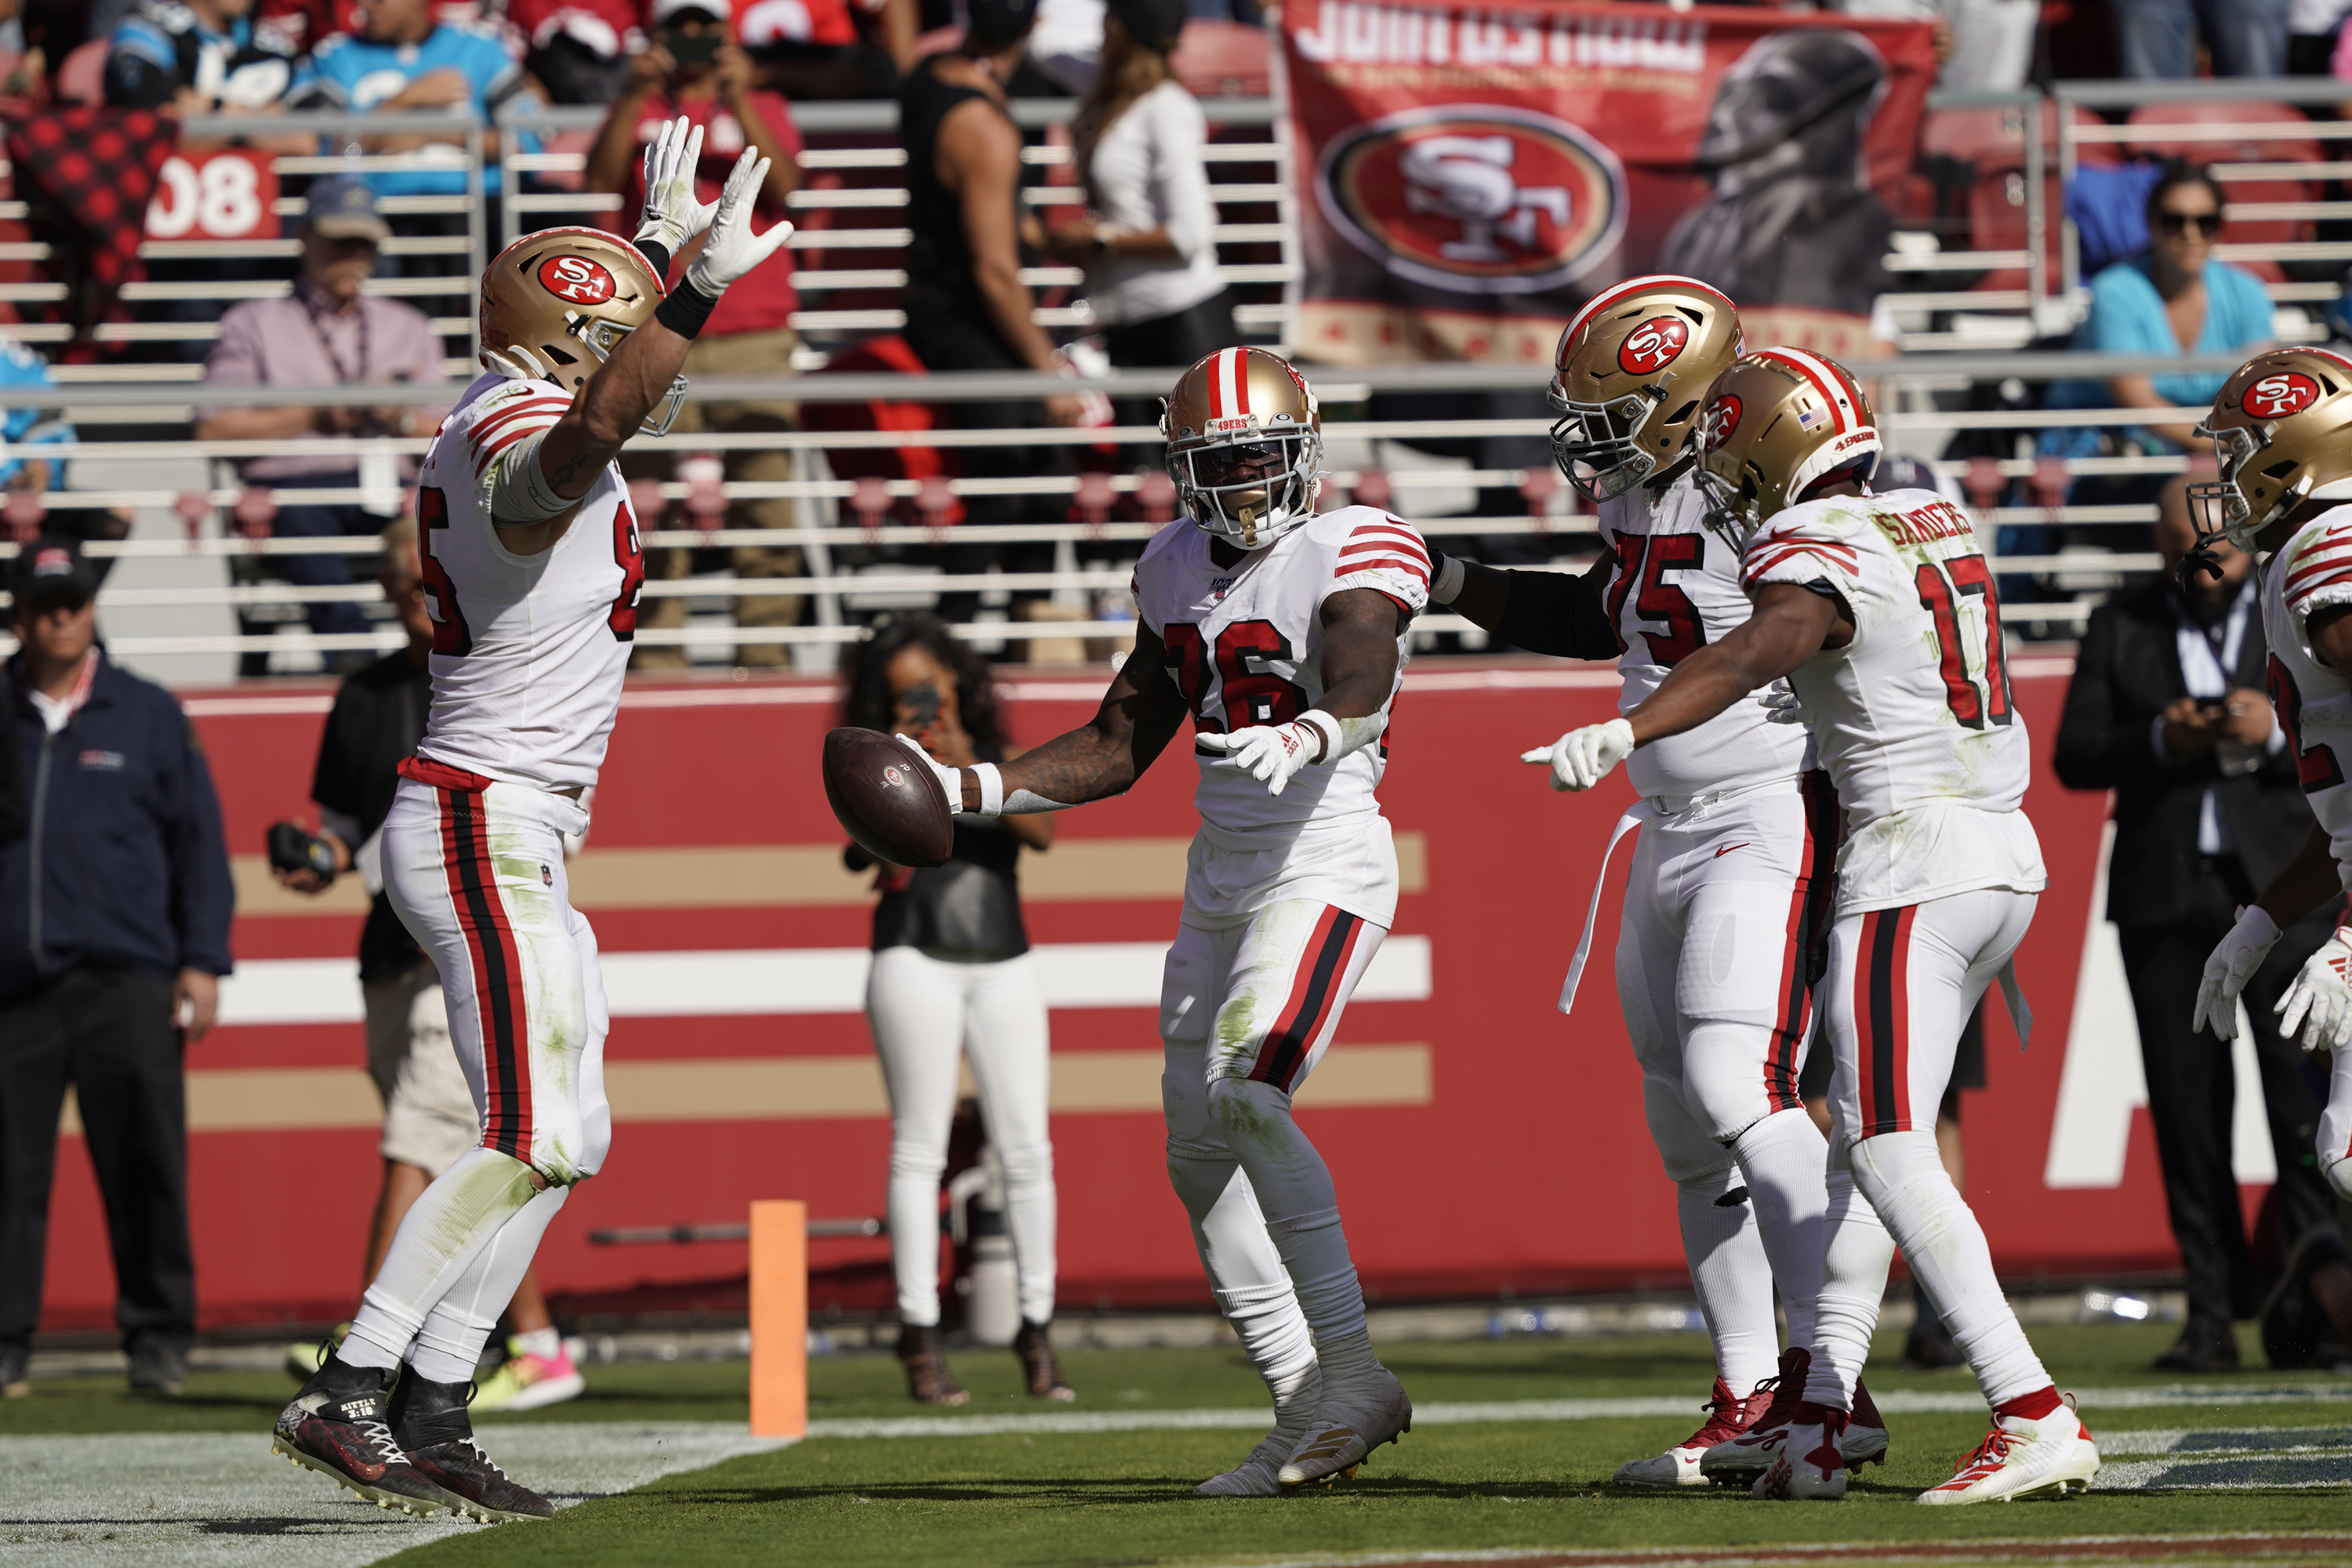 Coleman's 4 TDs lead 49ers past Panthers 51-13